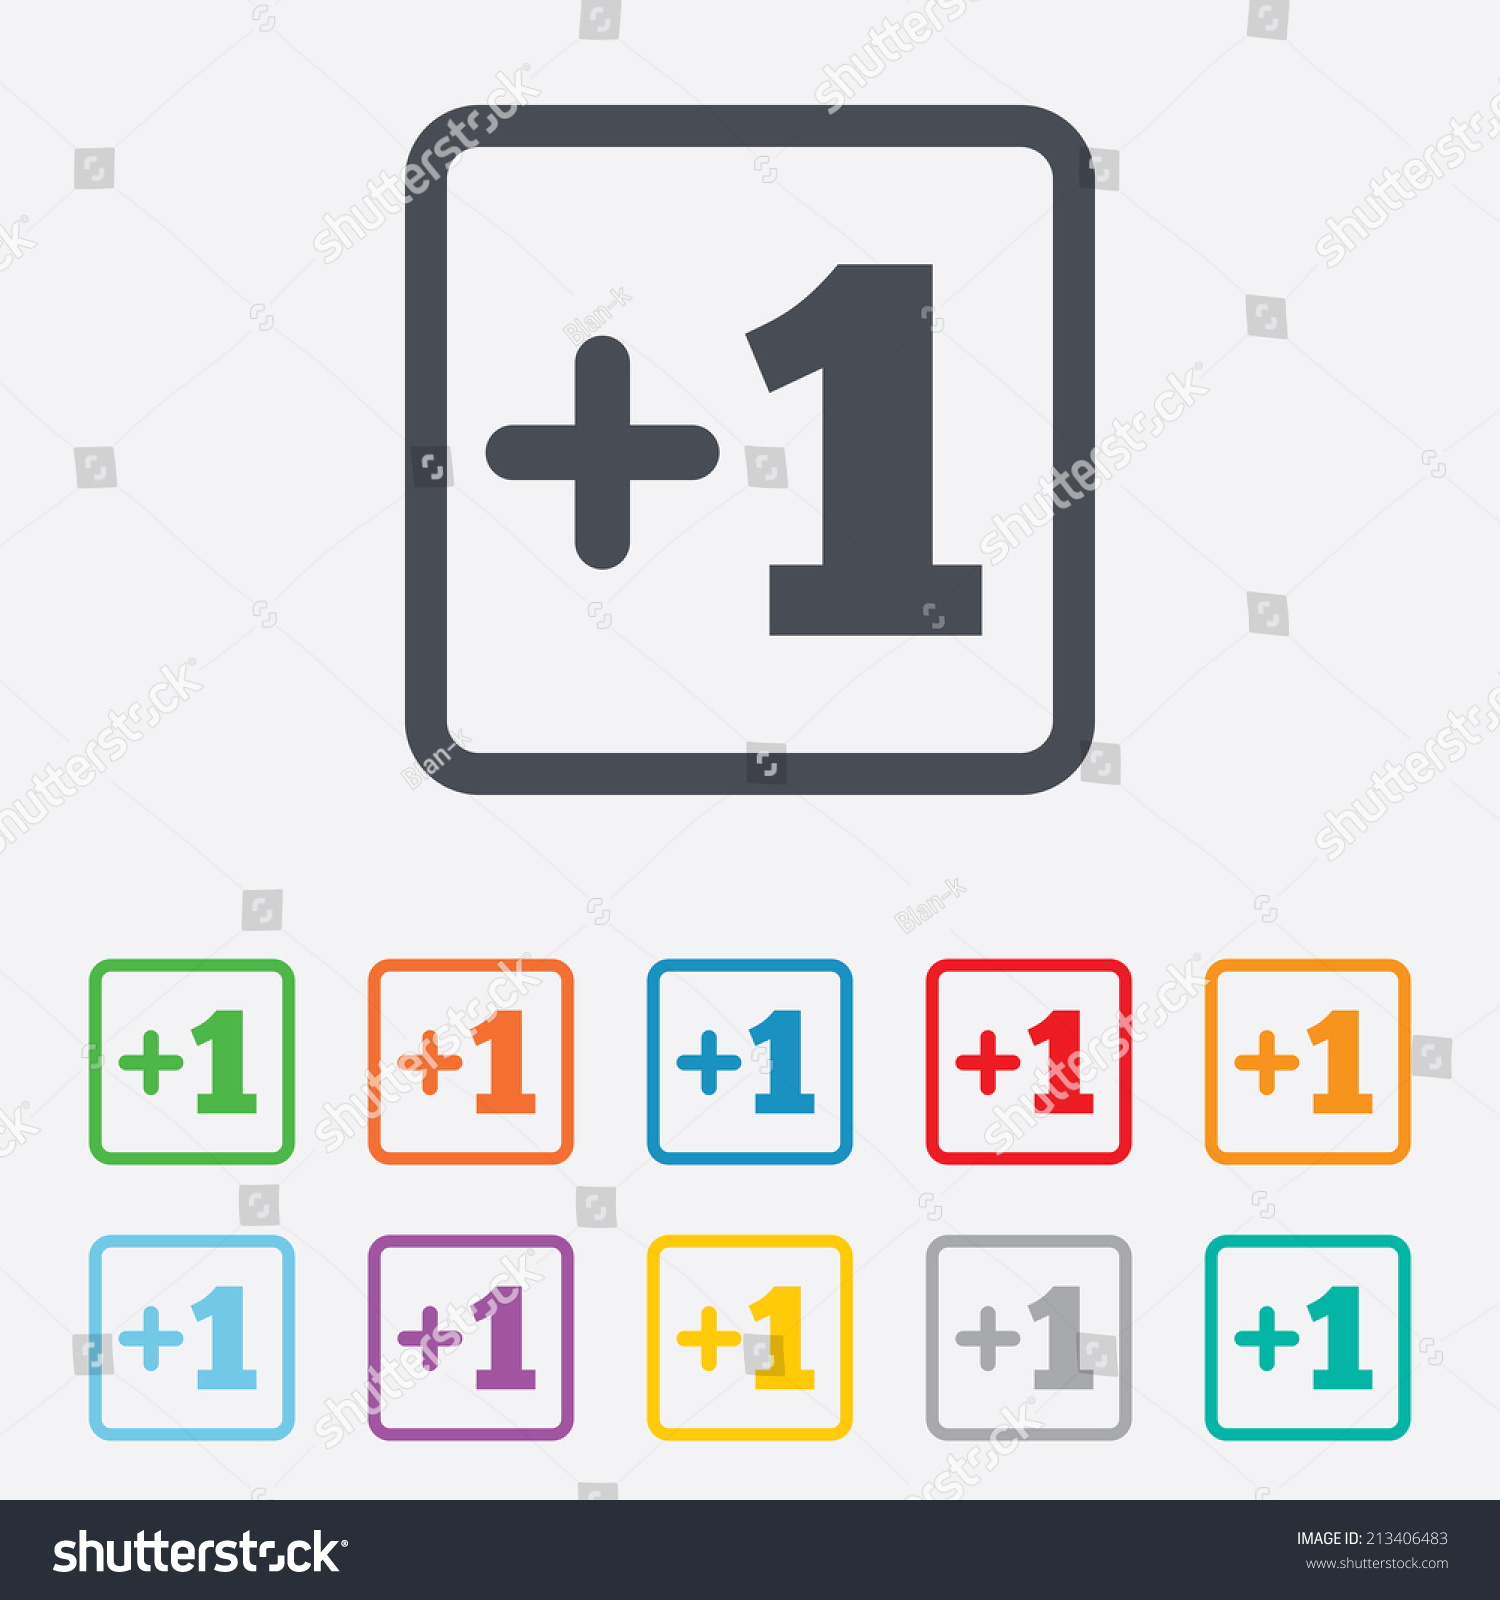 Plus One Sign Add One Symbol Stock Vector (Royalty Free) 213406483 ...